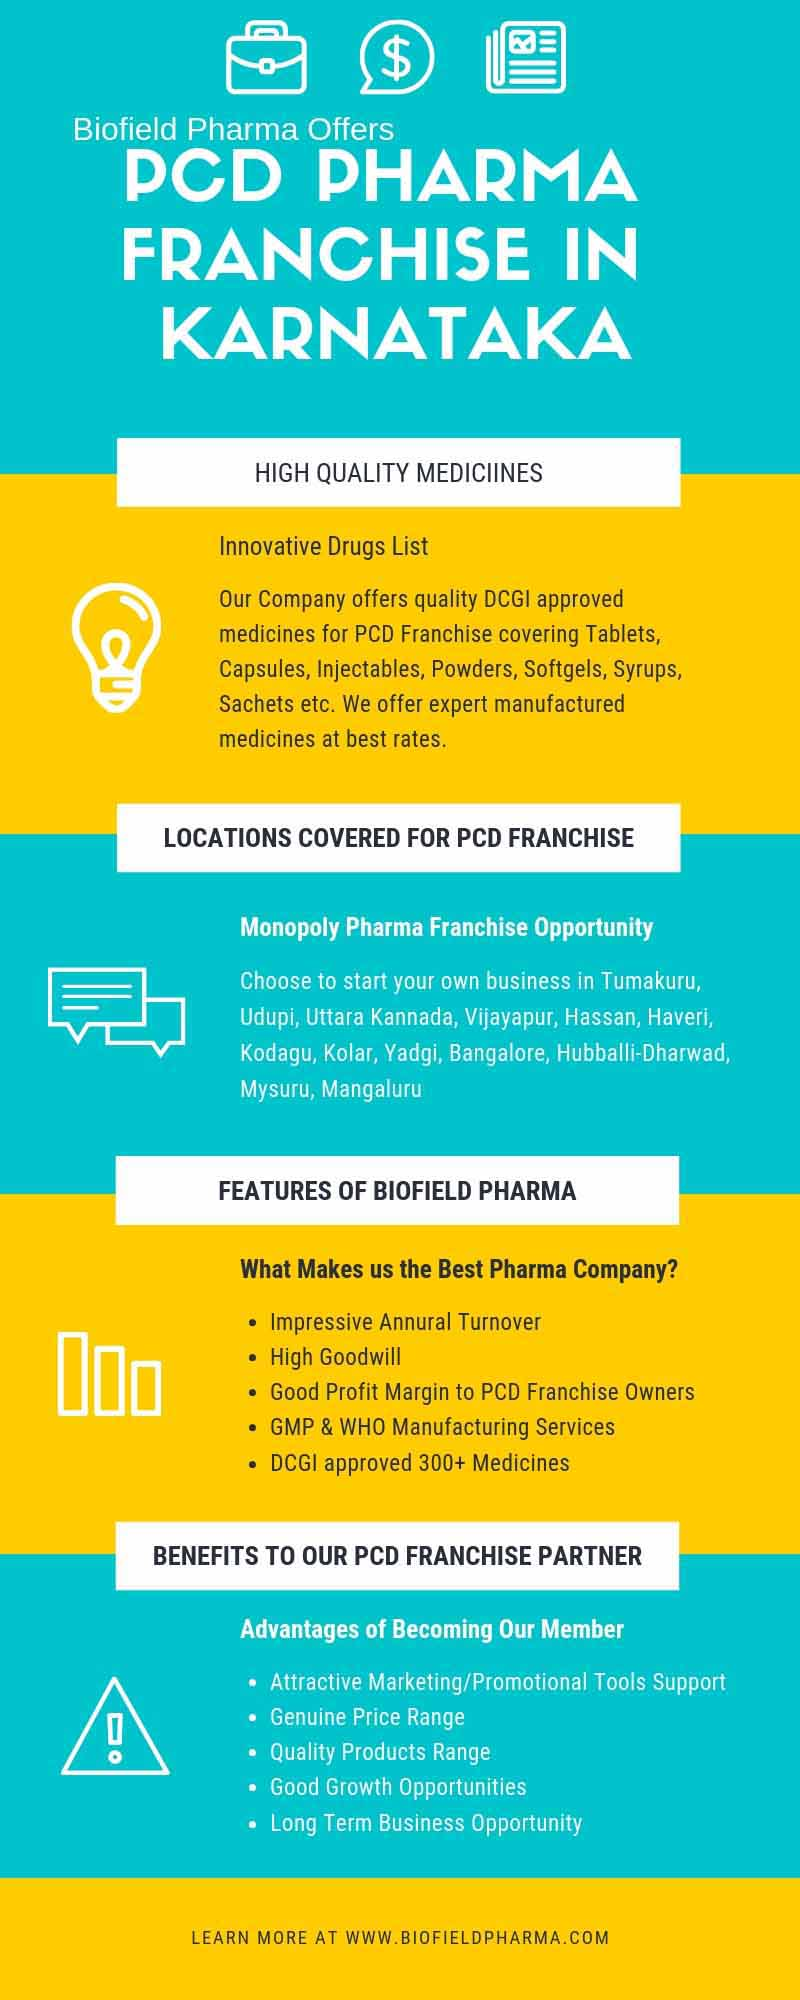 PCD/ Pharma franchise Business in Karnataka